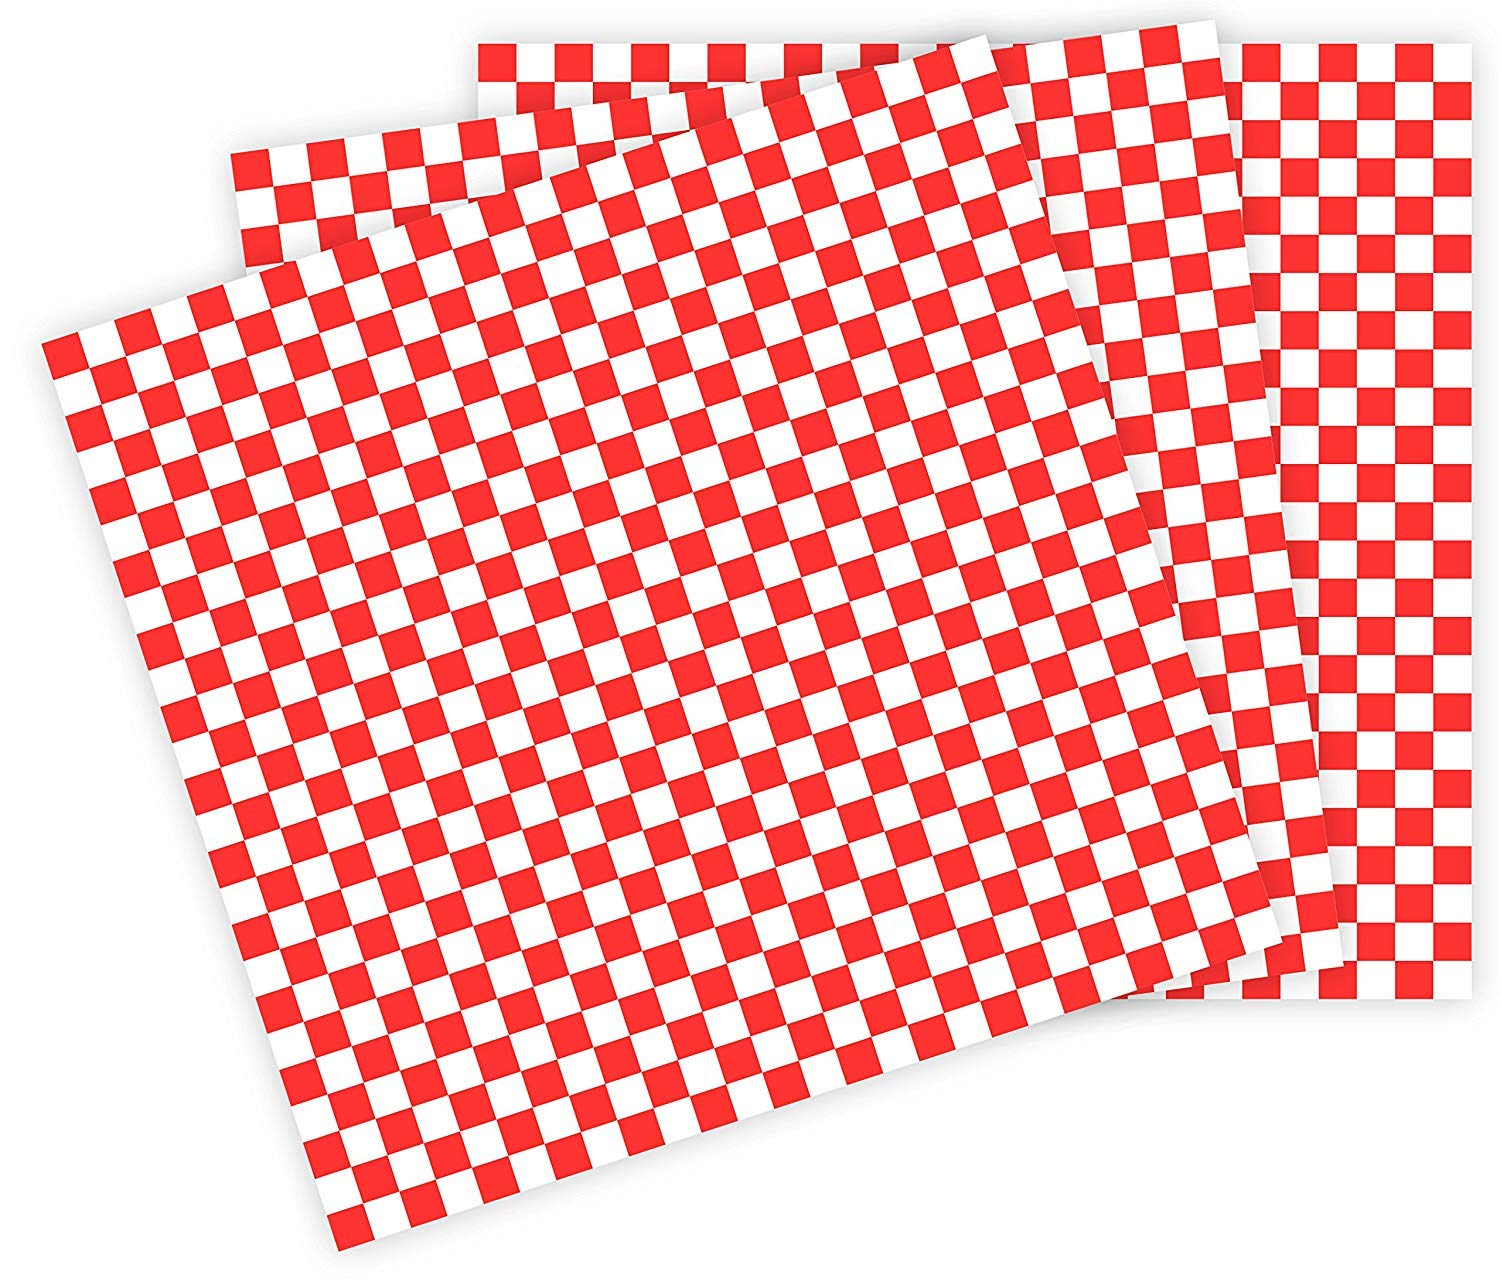 Deli Sandwich Wraps Red & White Checkered Food Wrapping Papers Basket Liners Red Check 12